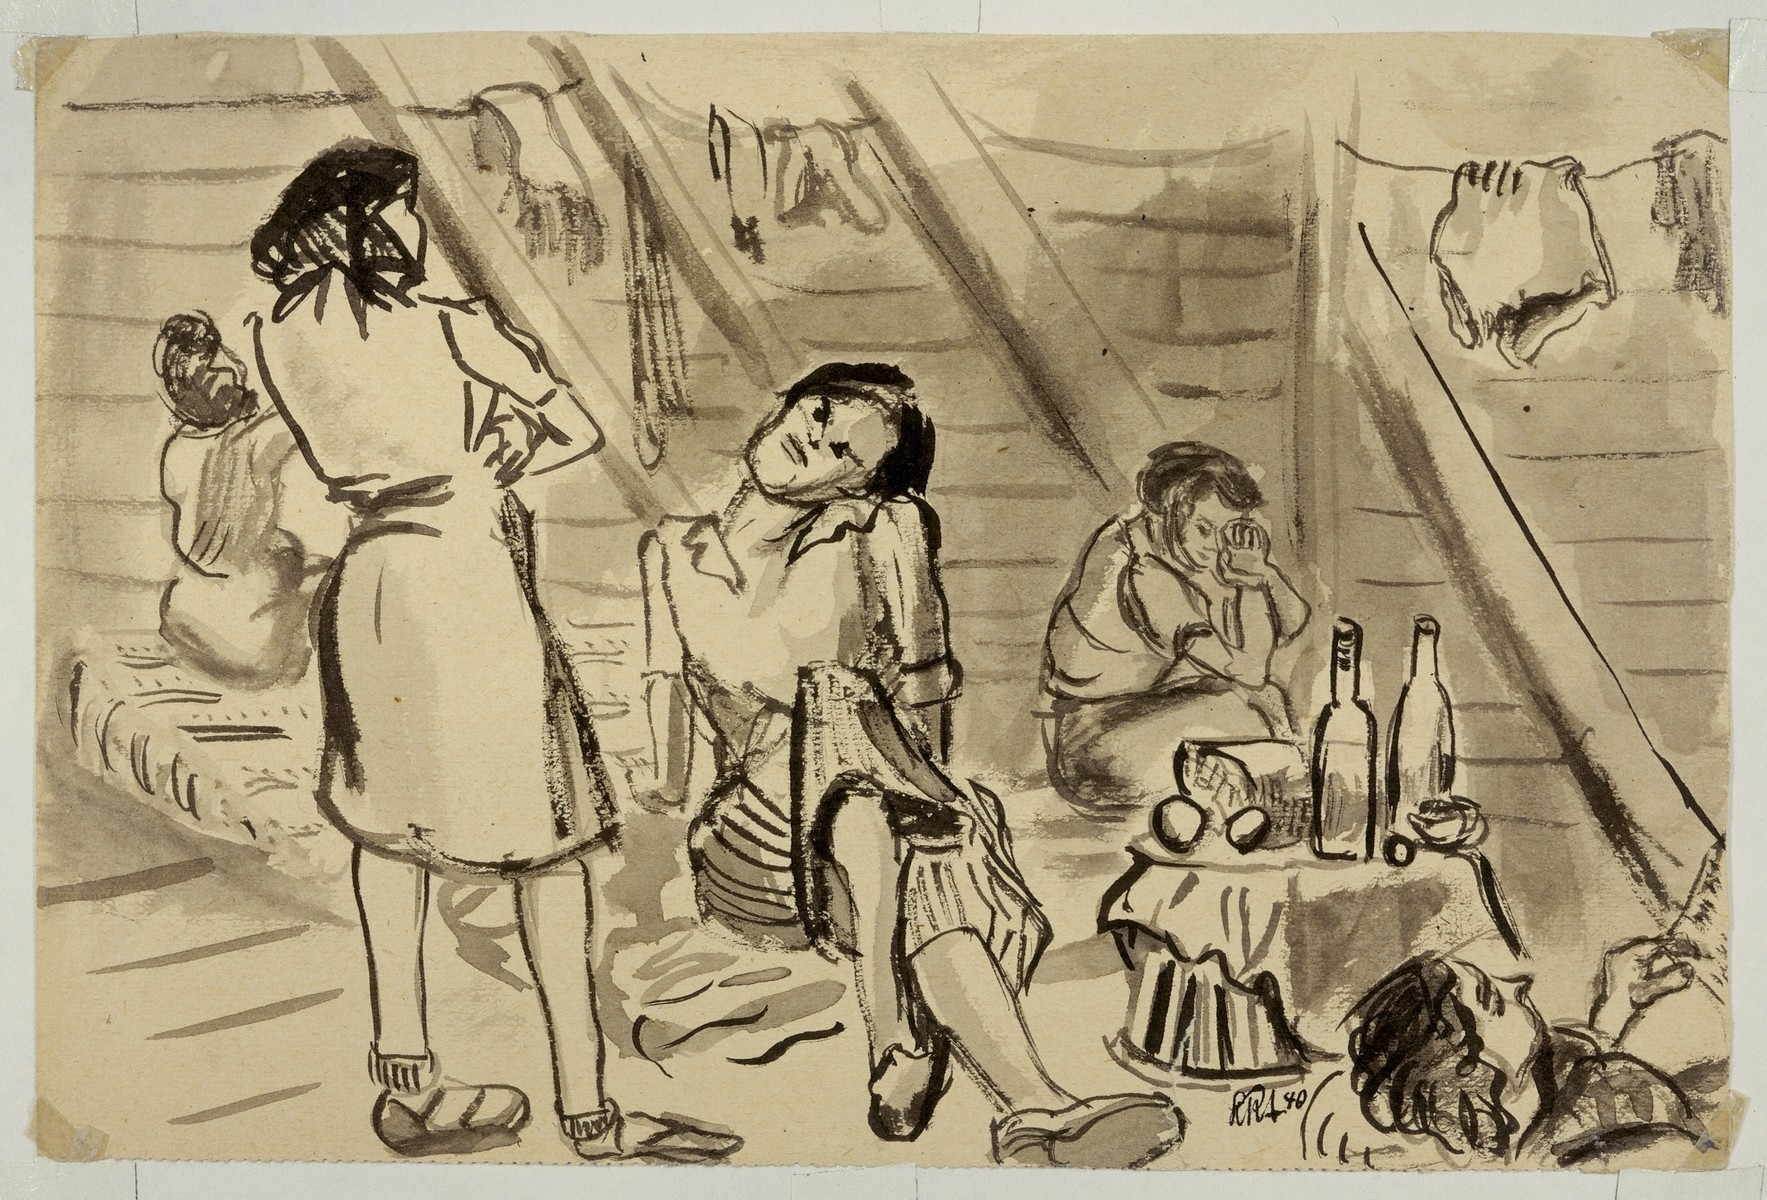 Sketch of a women's barracks in Gurs by Lili Andrieux.